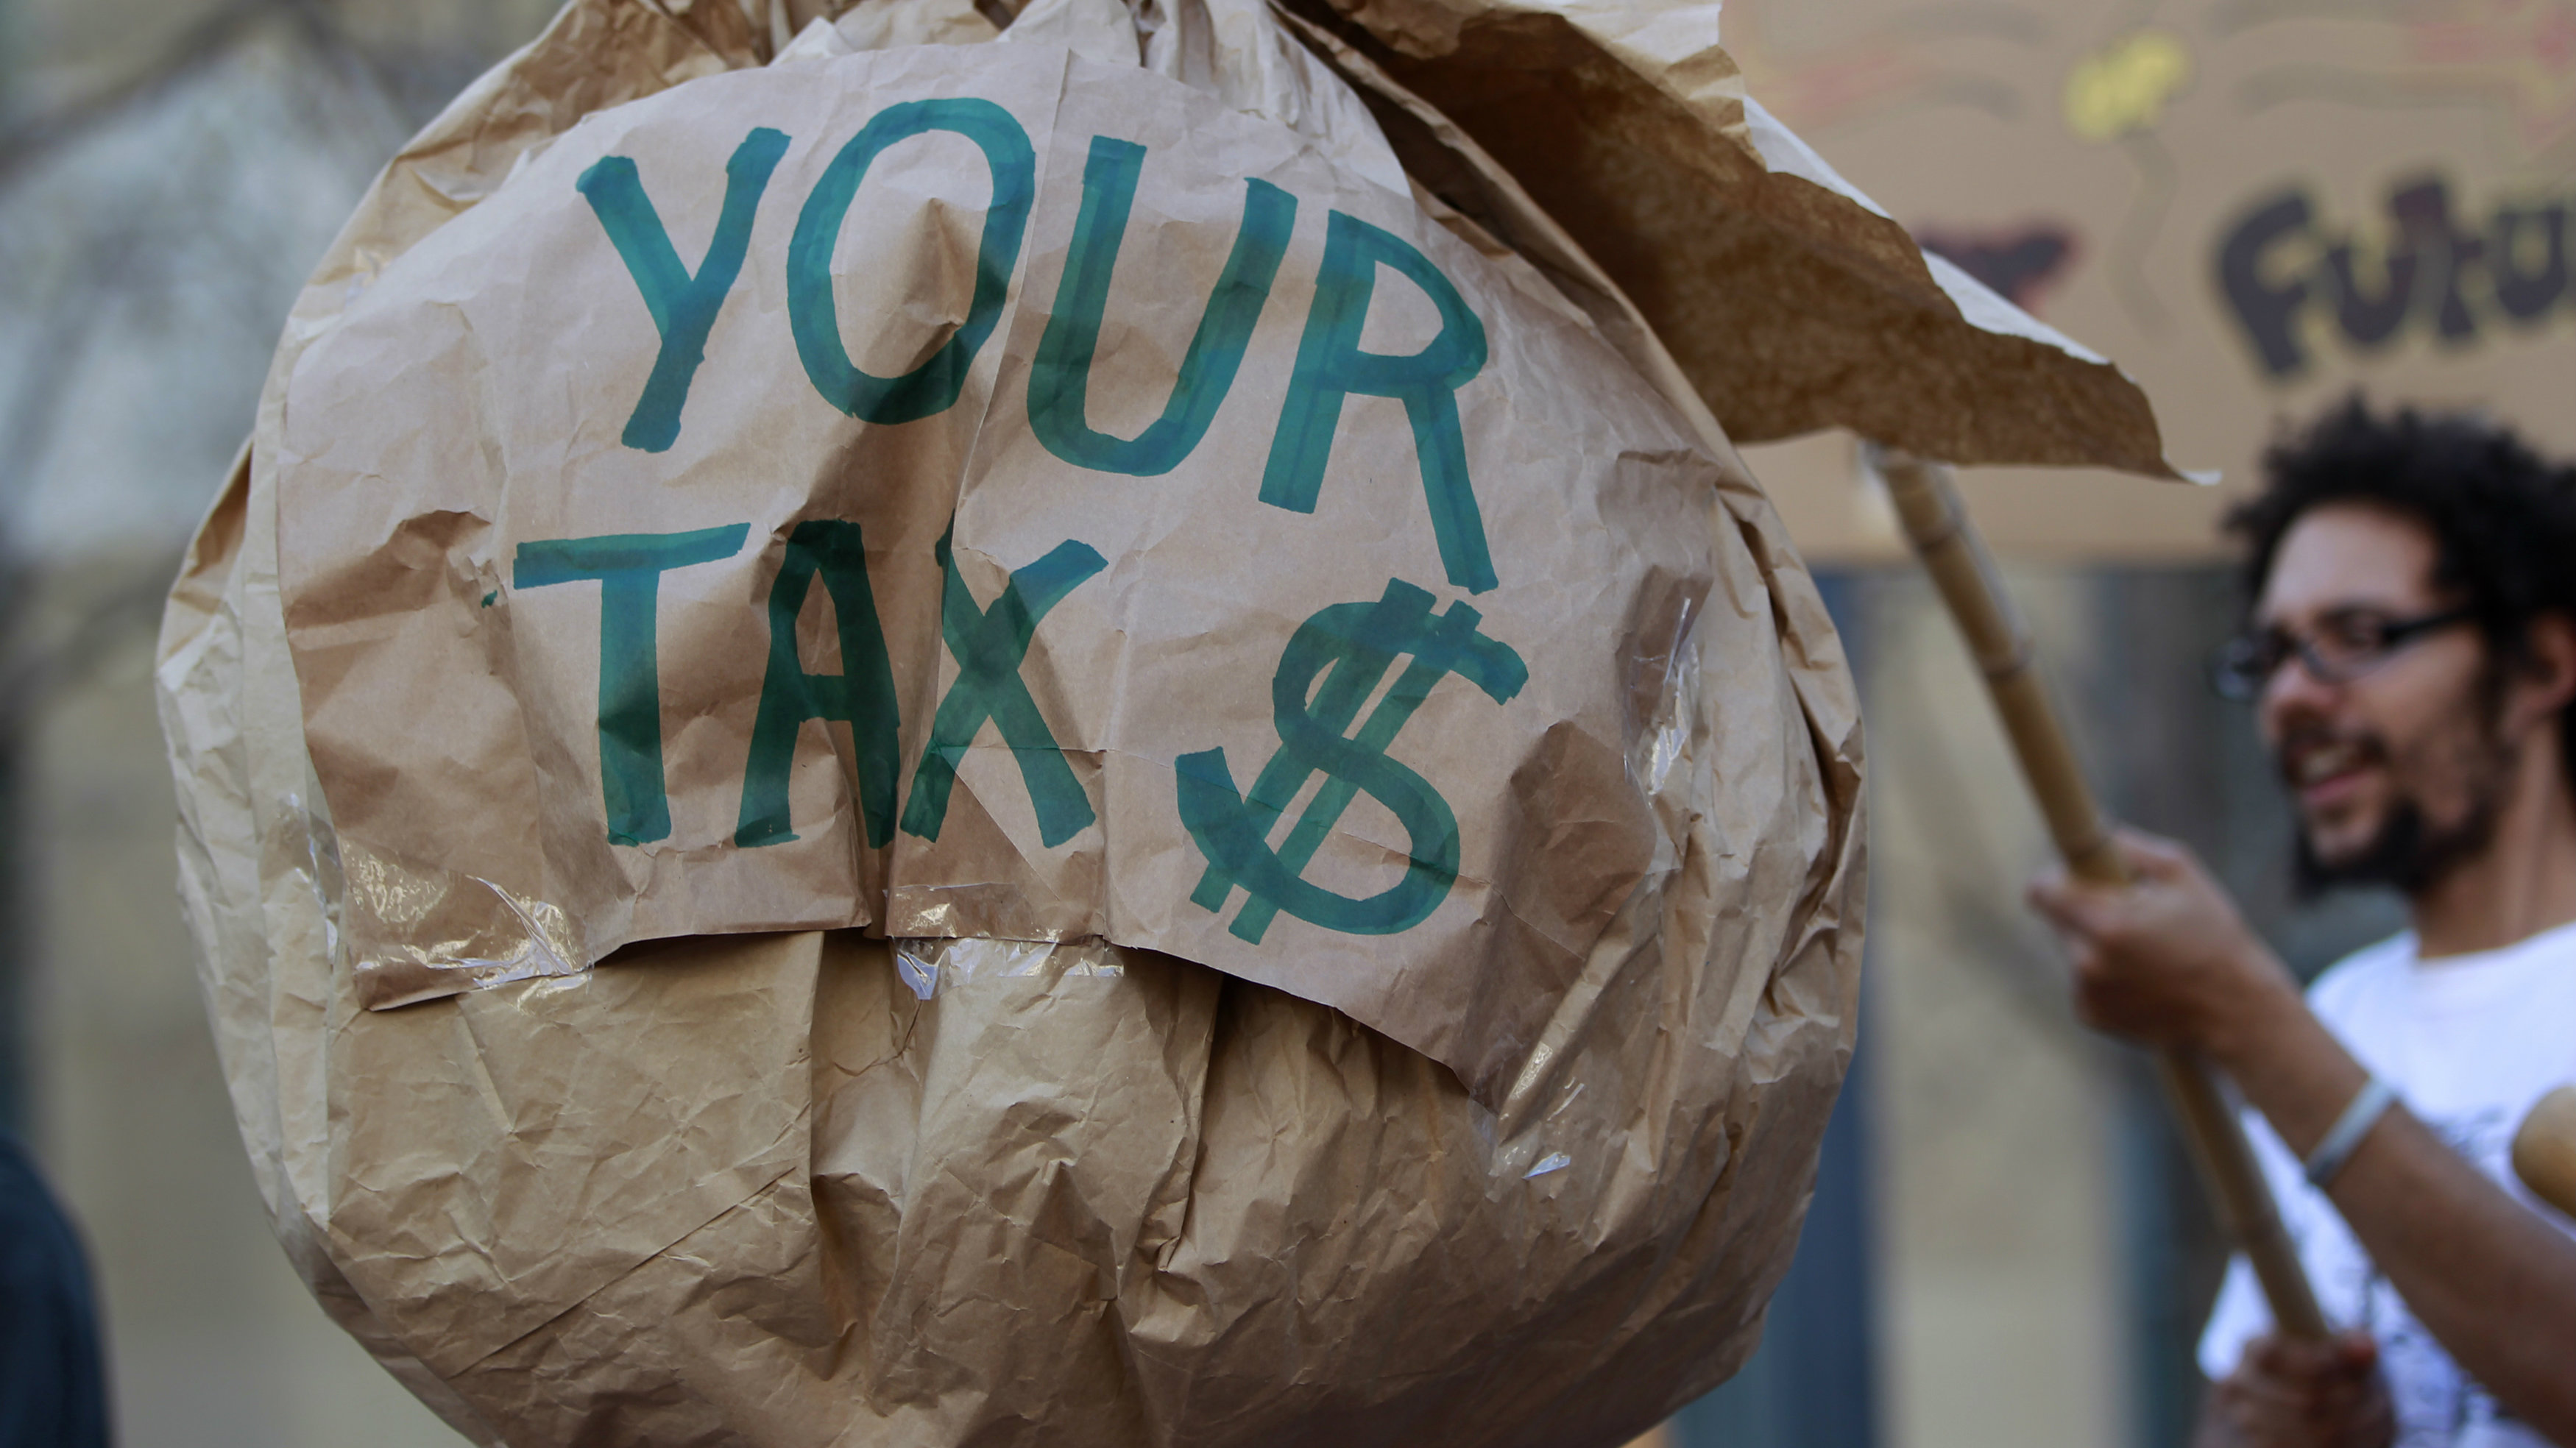 Tax season wraps up, IRS scams increase